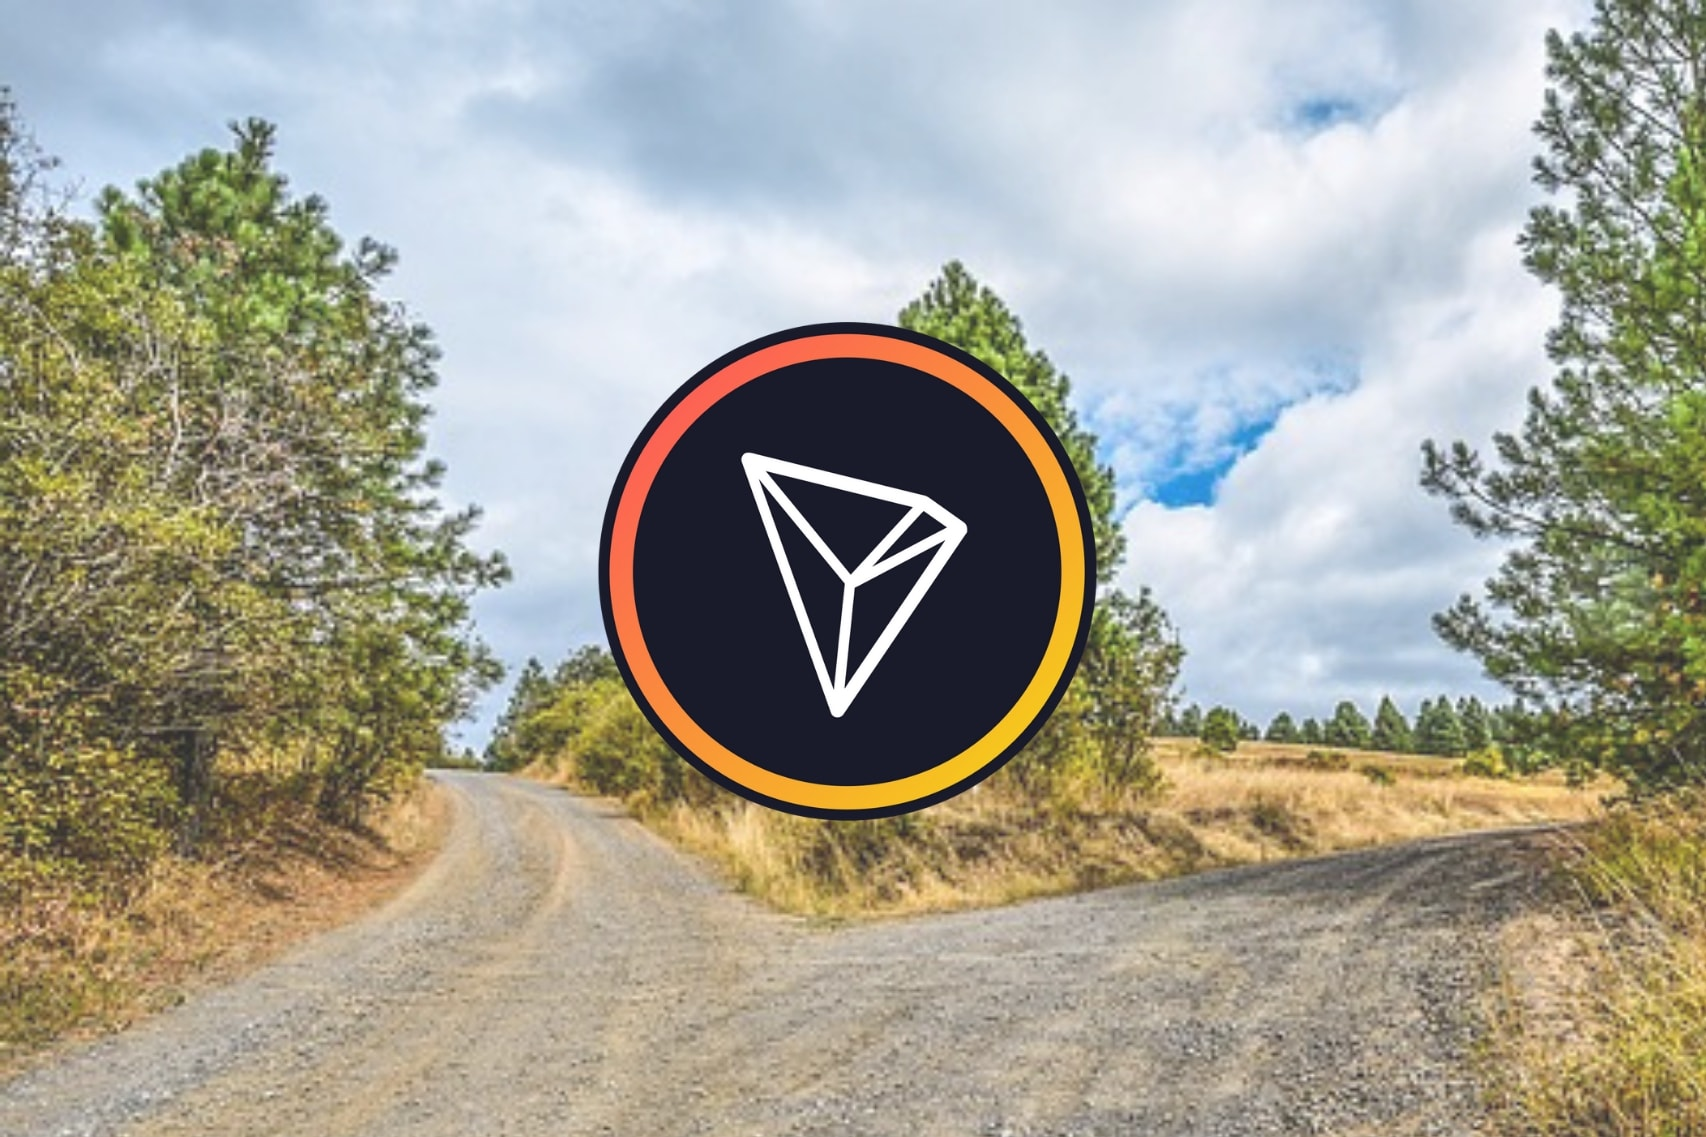 Ready for Institutional Investment: TRON (TRX) Hard Fork Will Enable Features That Meet Institutional Needs